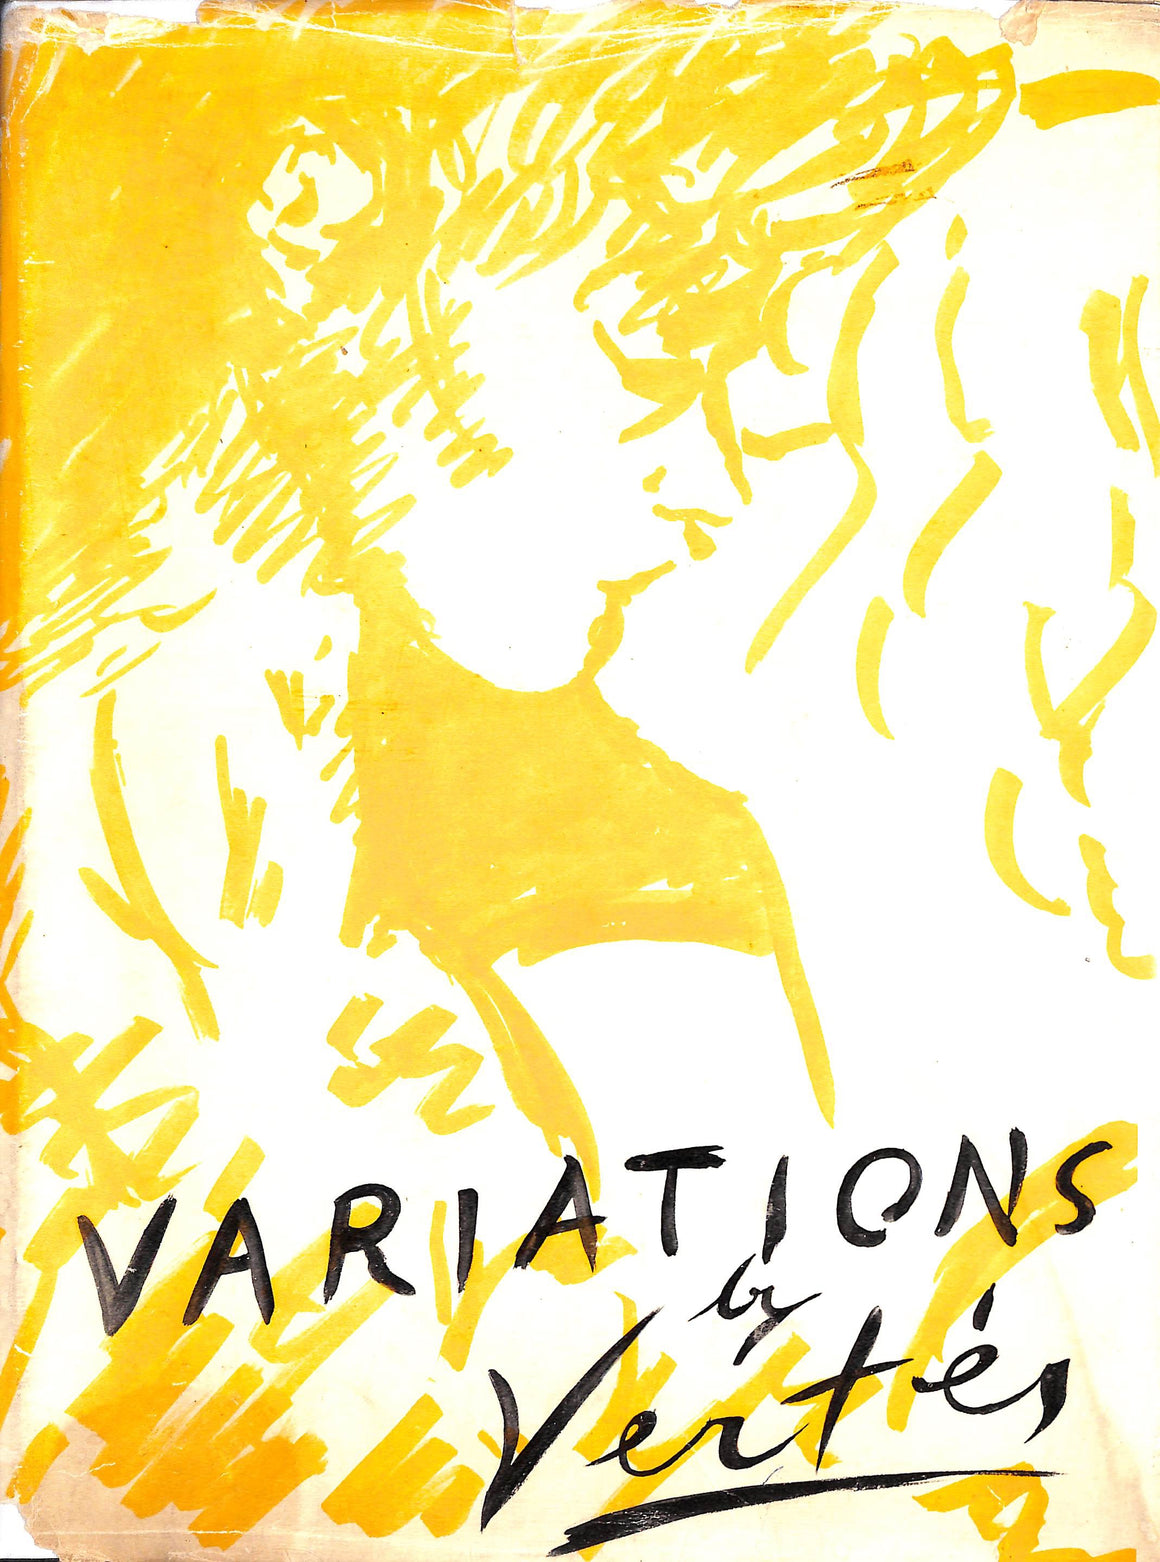 Variations by Vertes